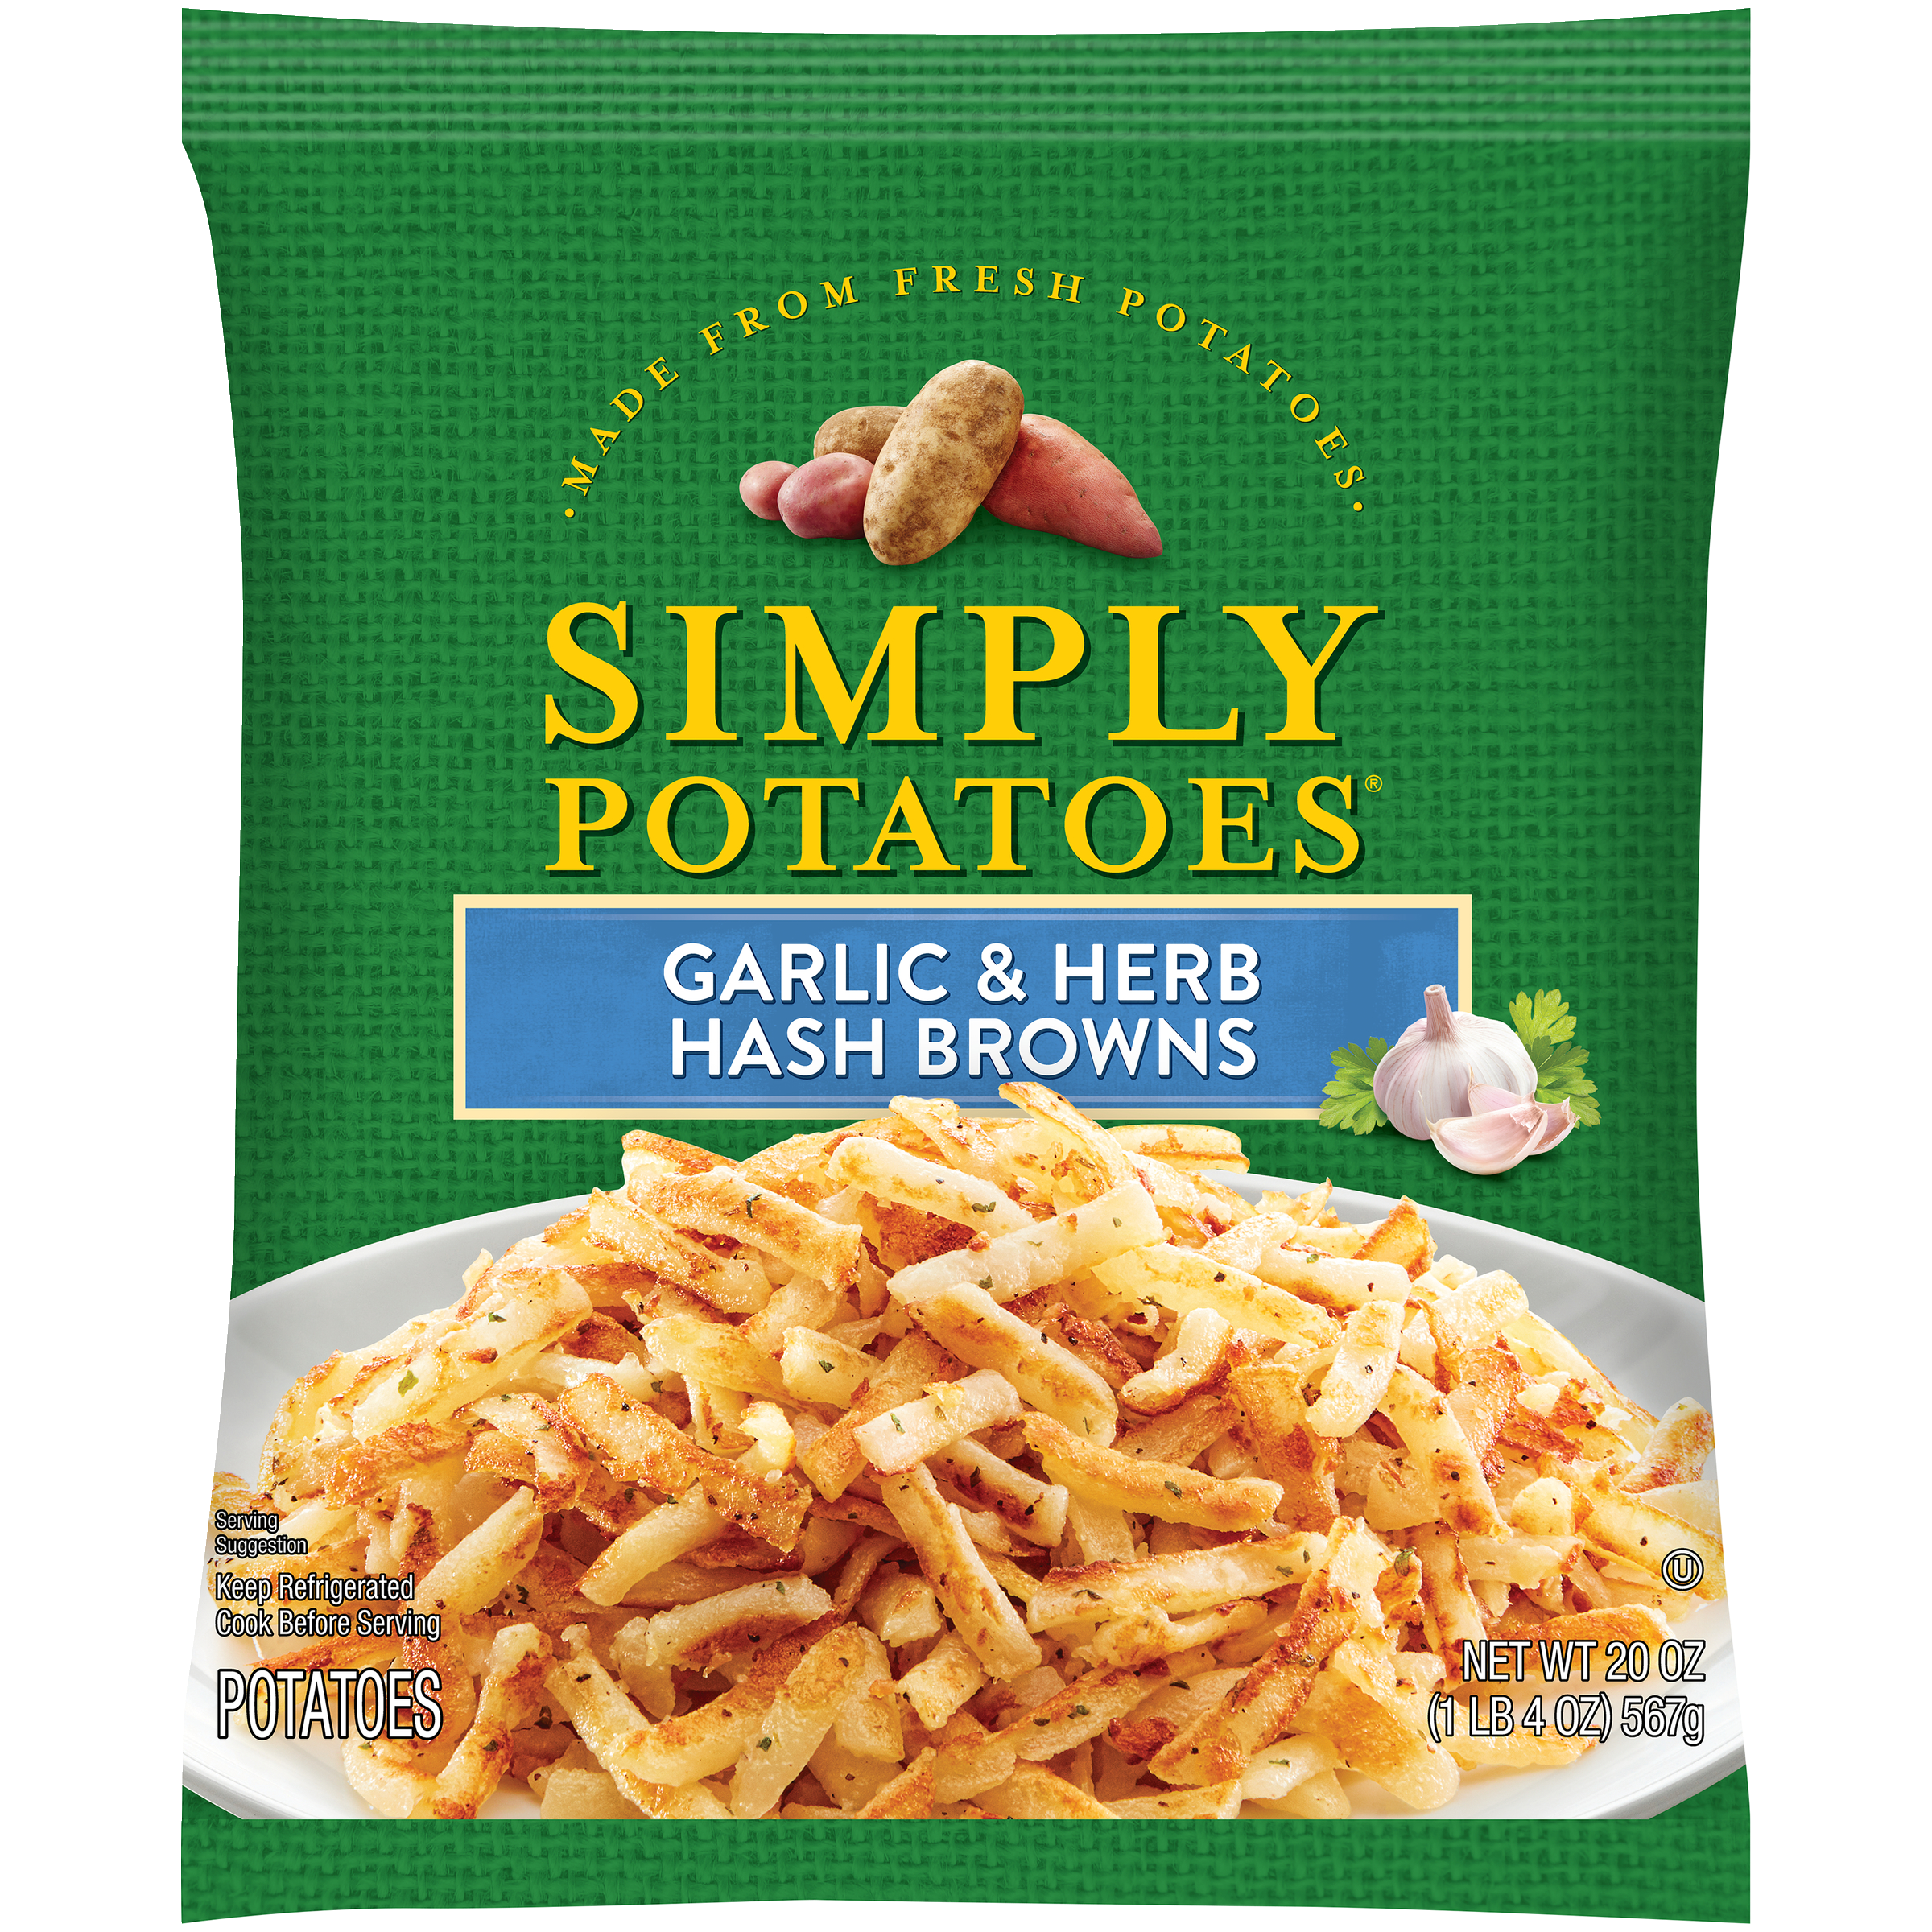 photo of Simply Potatoes Garlic and Herb Hash Browns product